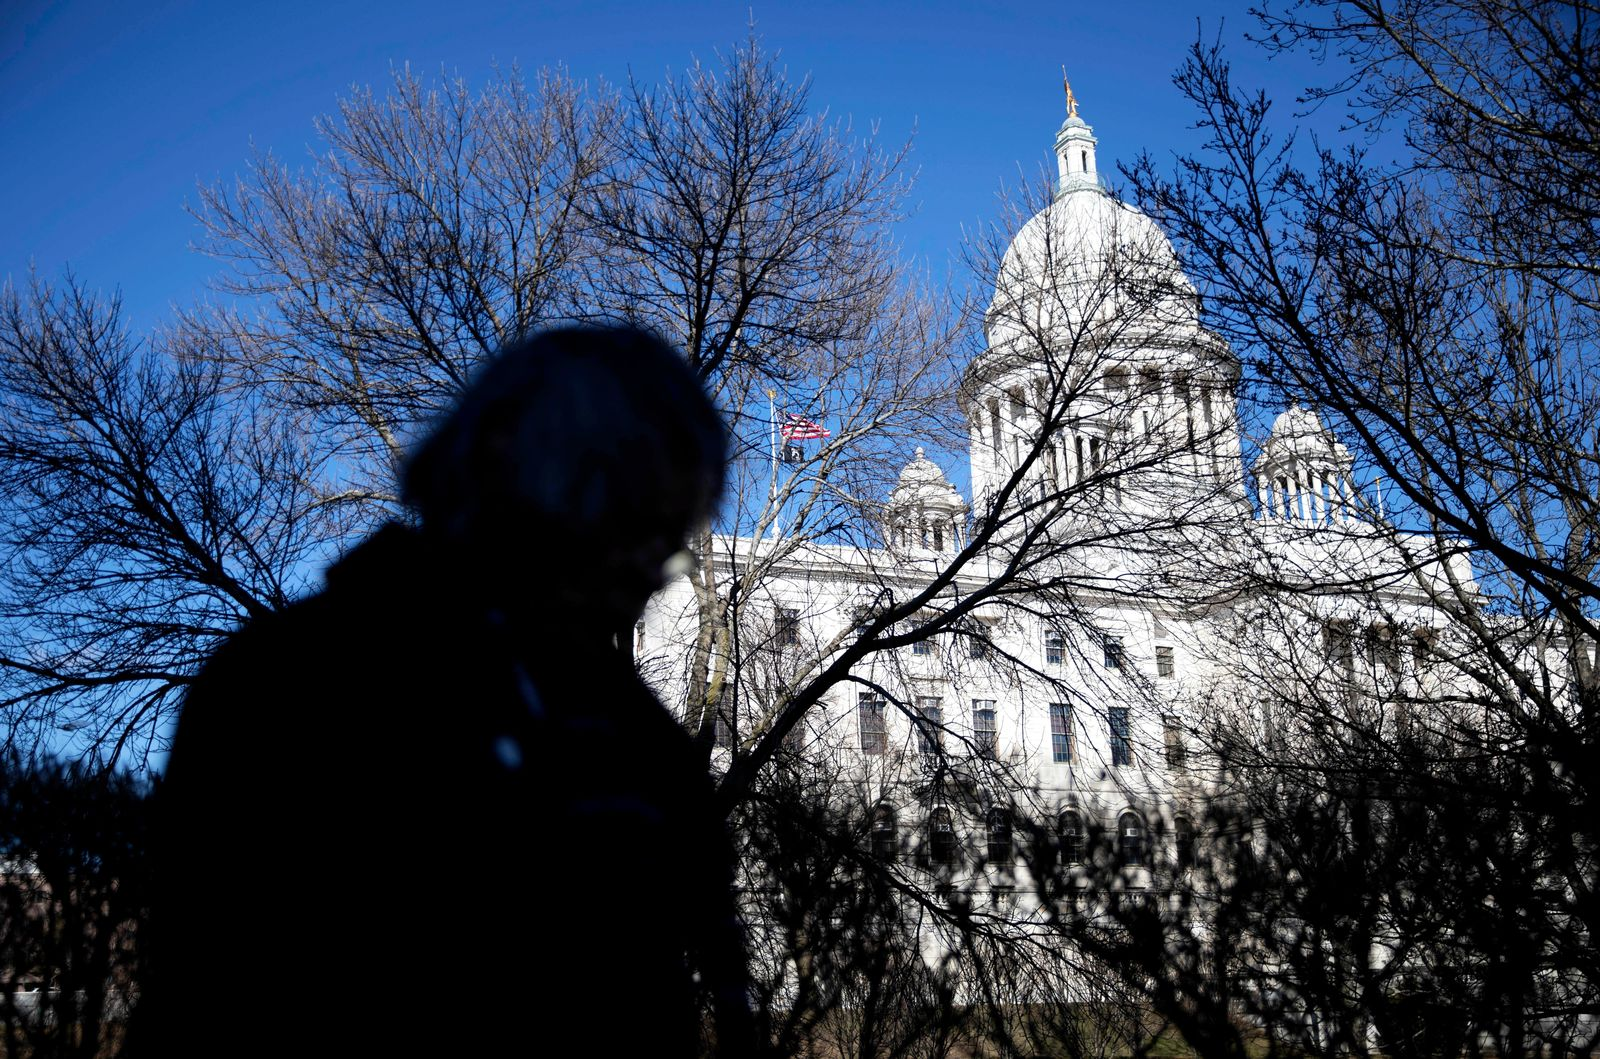 FILE - In this Sunday, March 1, 2020 file photo, a pedestrian walks past the State House in Providence, R.I., as the state confirmed its first case of COVID-19.{ } (AP Photo/David Goldman)